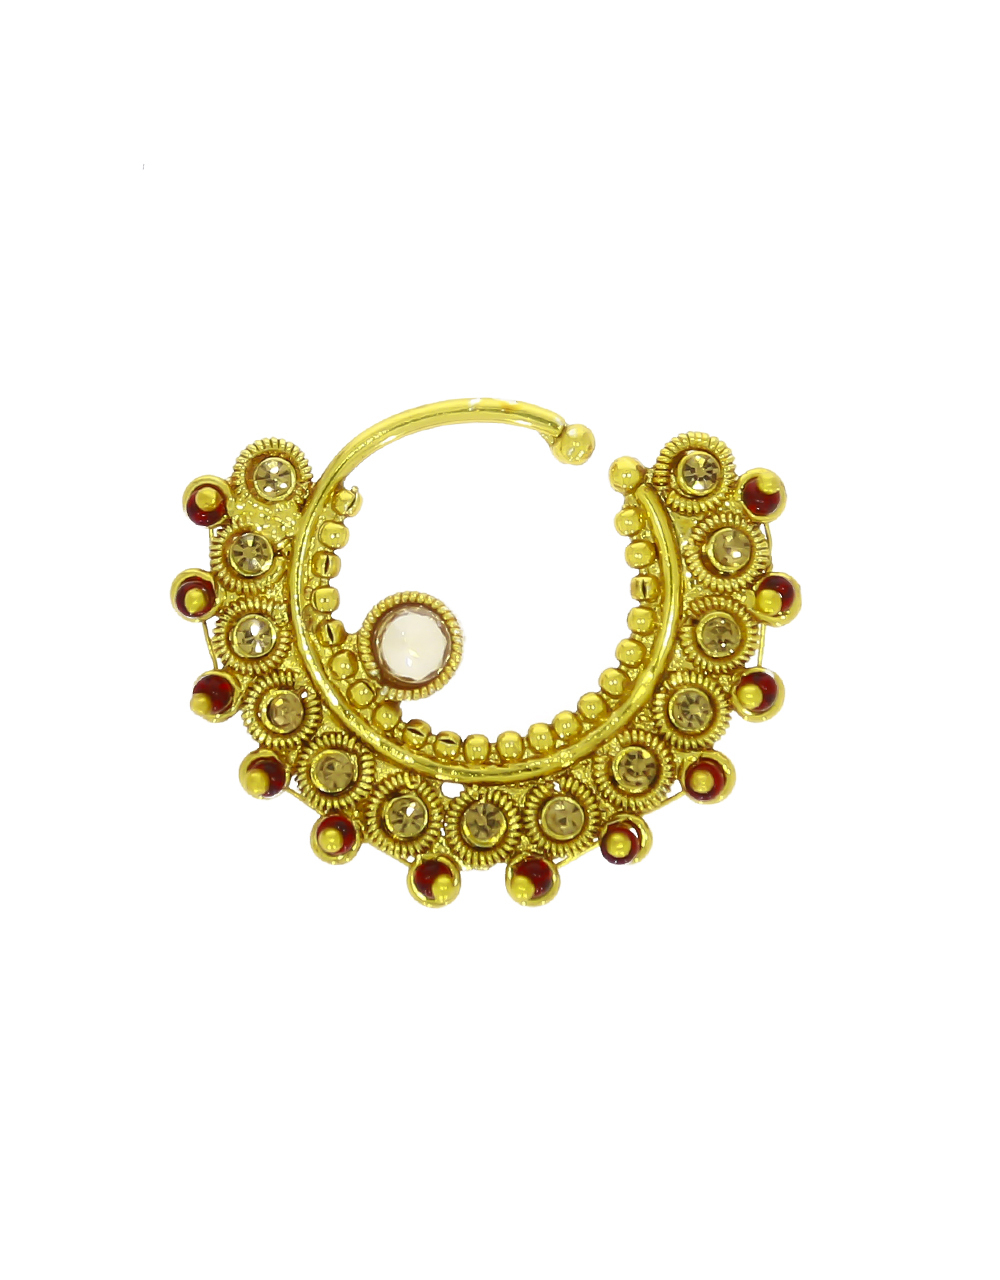 Rajasthani Look Beautiful Clip On Nose Ring for Women